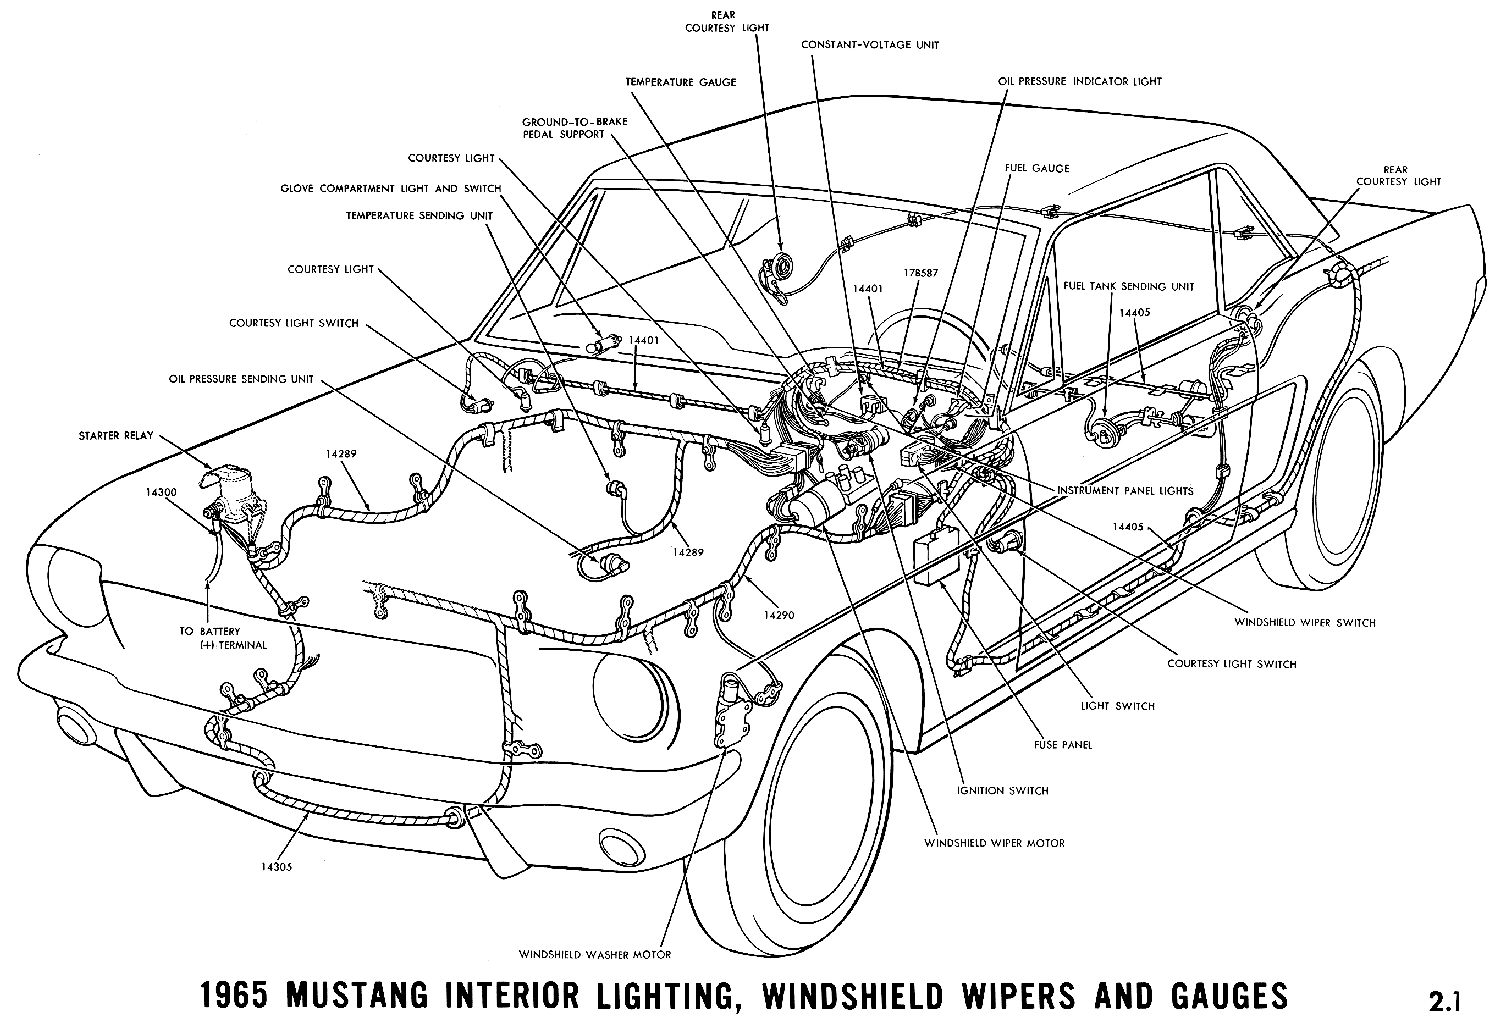 1965 mustang wiring diagrams average joe restoration rh  averagejoerestoration com Ford F-350 Windshield Wiper Motor Wiring Diagram  Wiper Switch Diagram